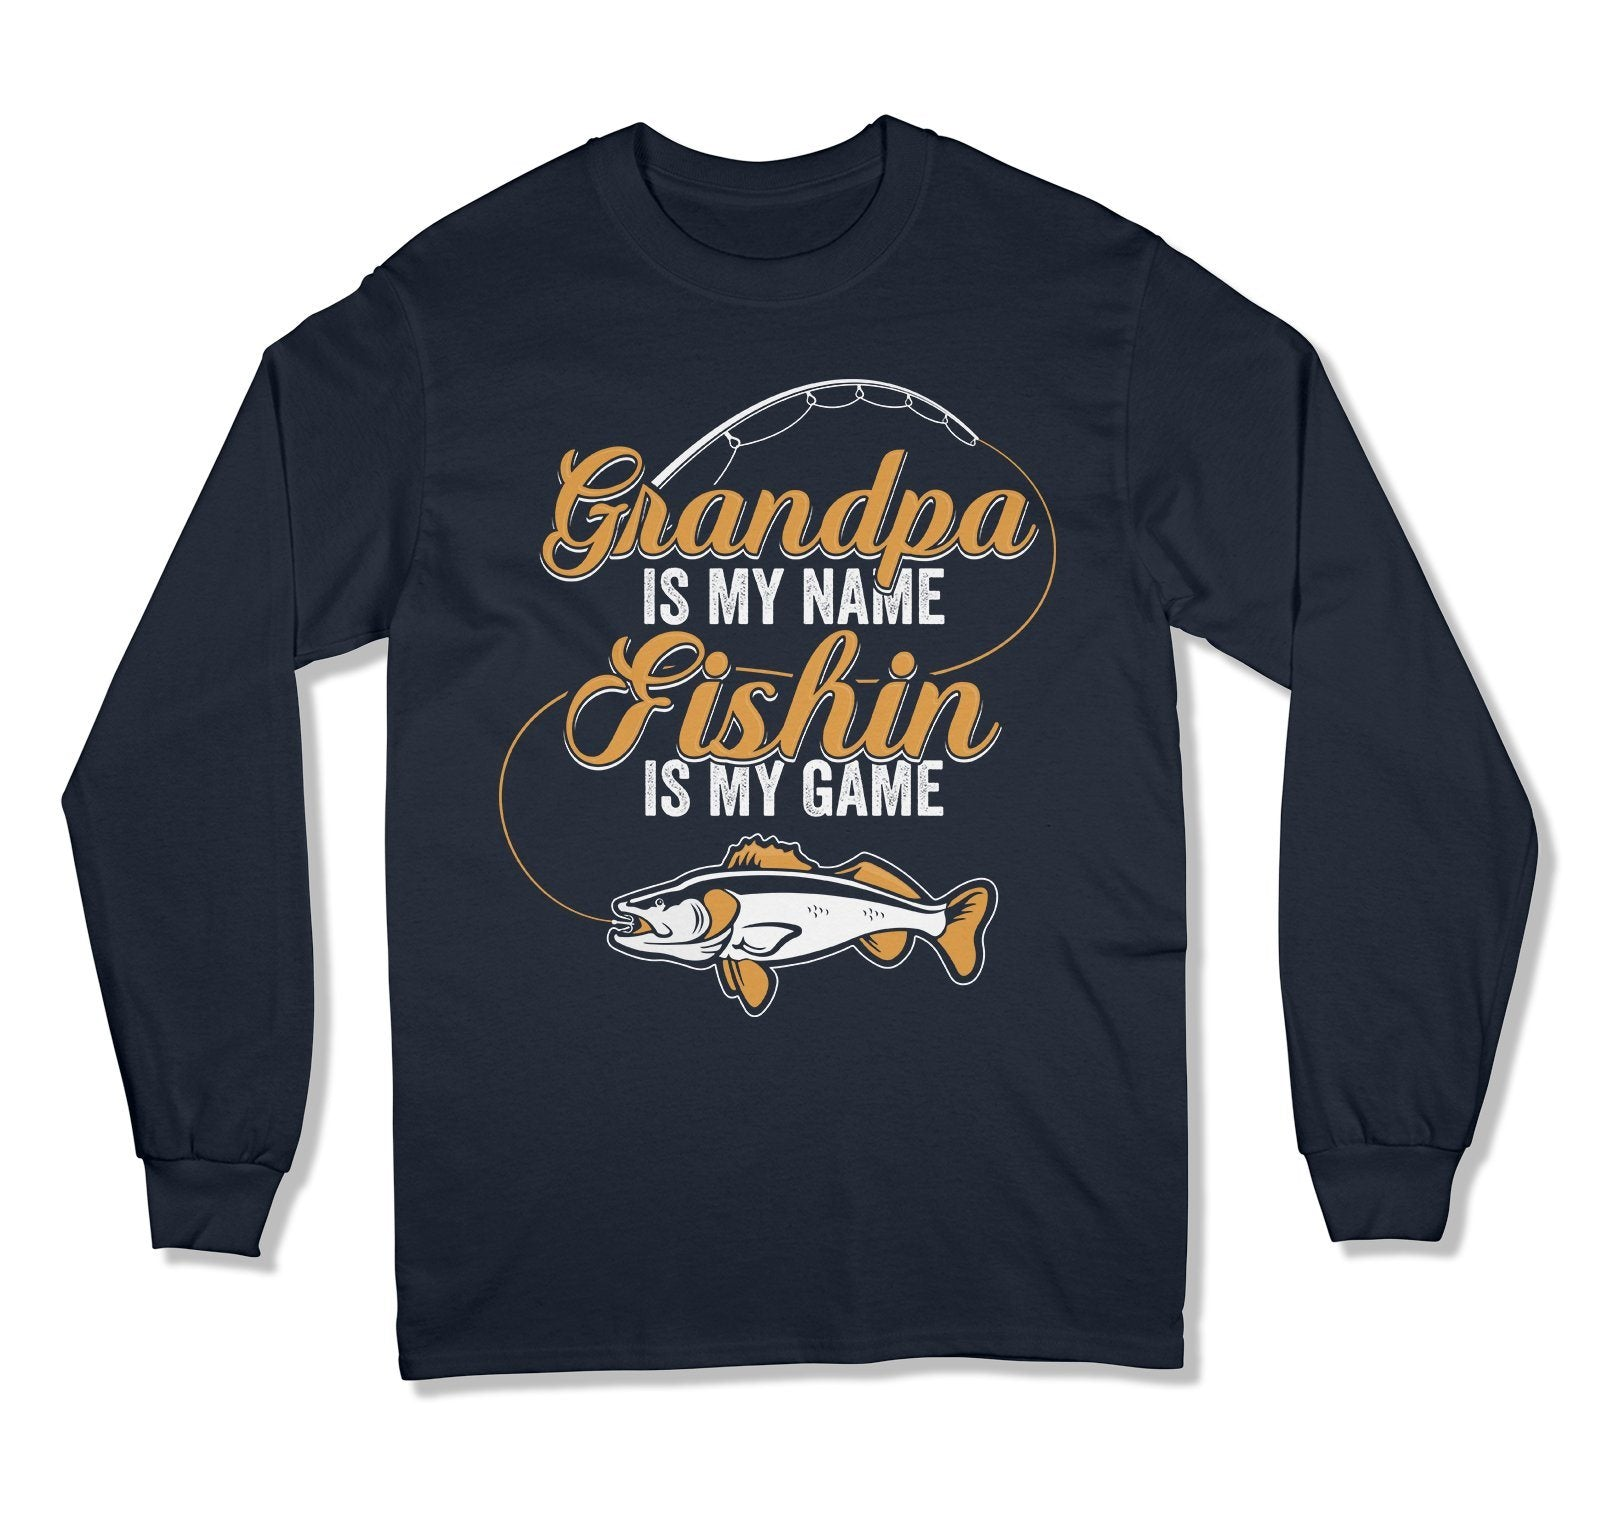 Grandpa is my Name Fishin' is my Game T-Shirt - MD-670